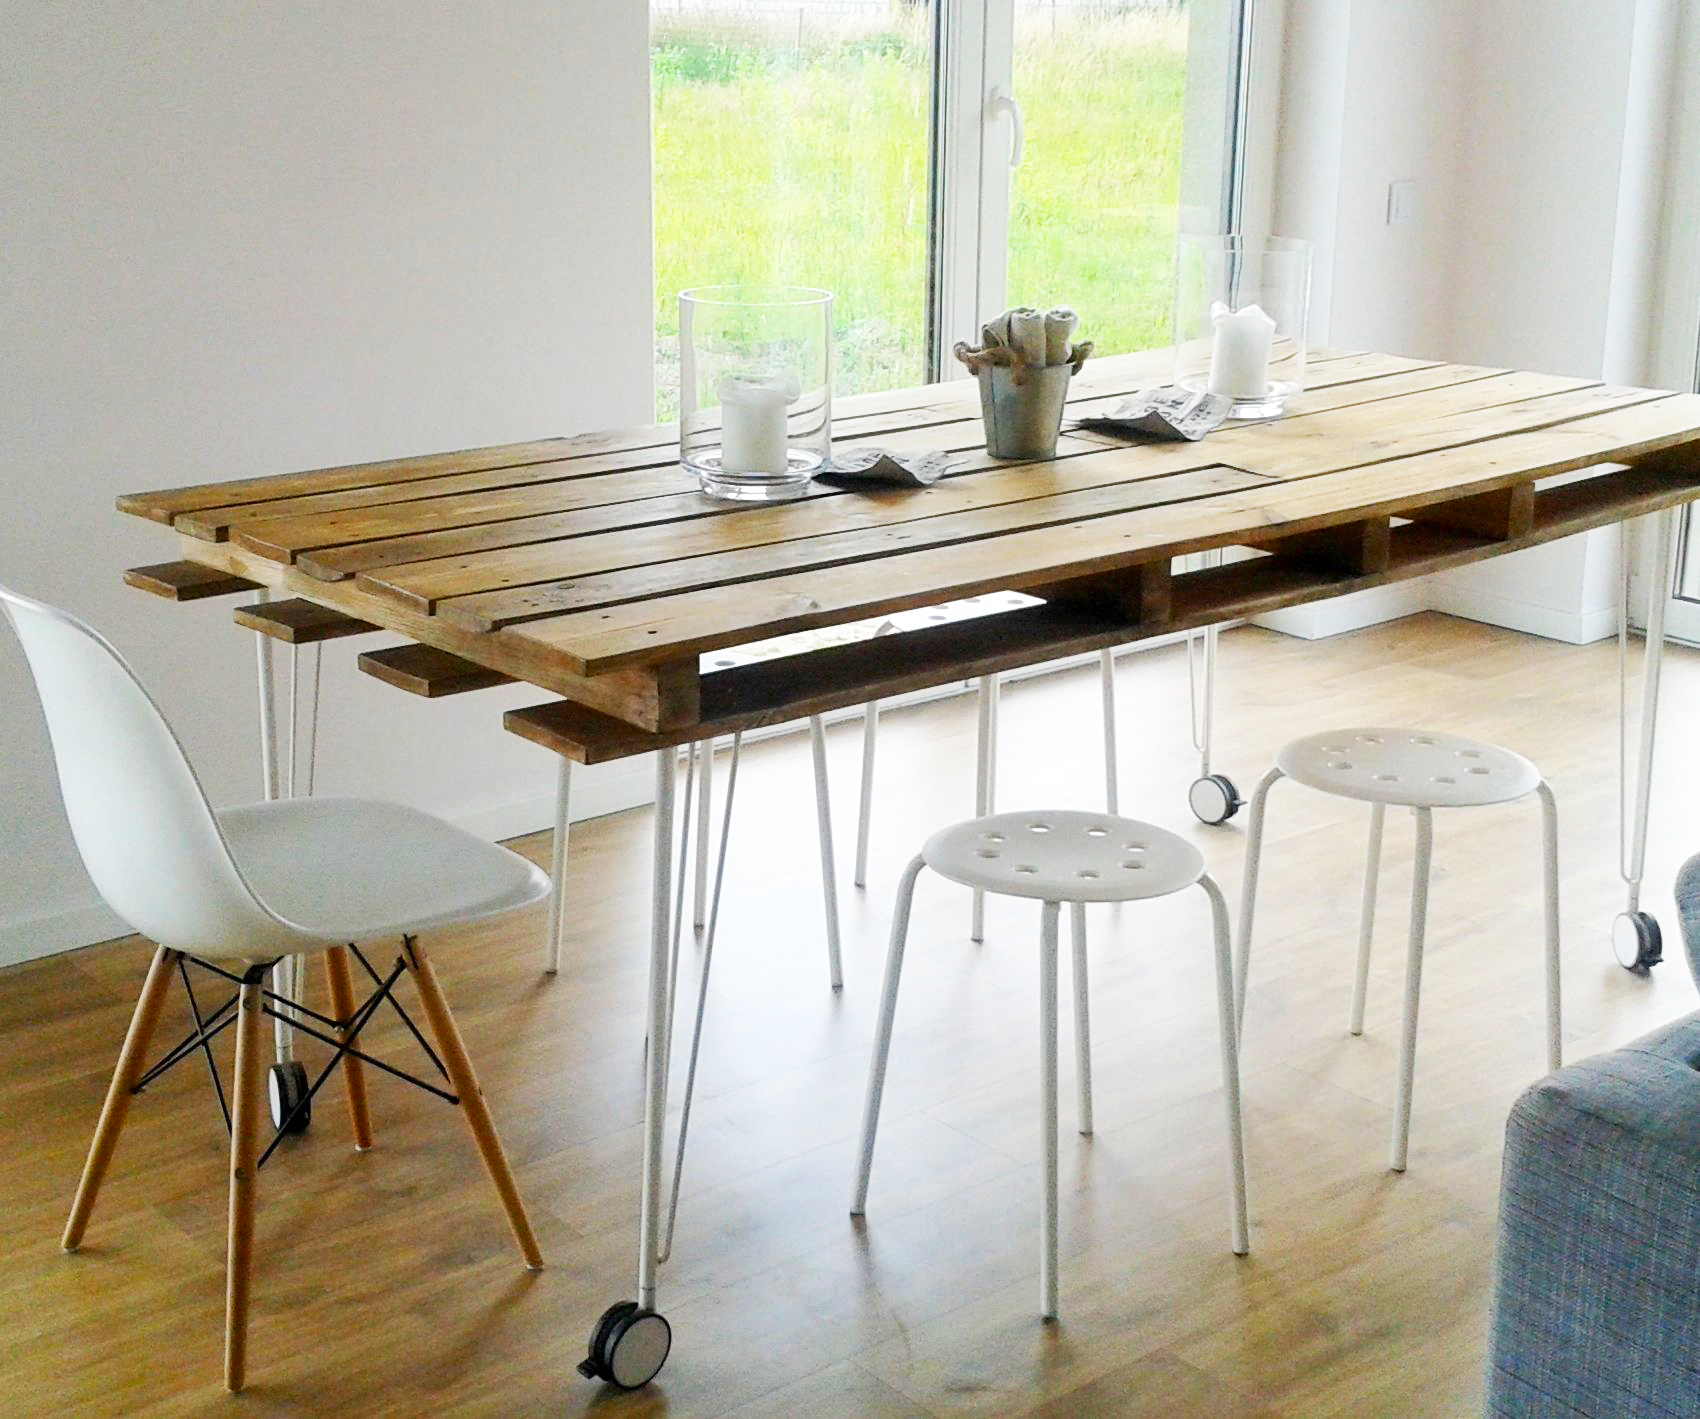 furniture-ideas-from-wood-pallet-project-how-to-make-wood-pallet-dining-table-with-modern-dining-table-pallet-furniture